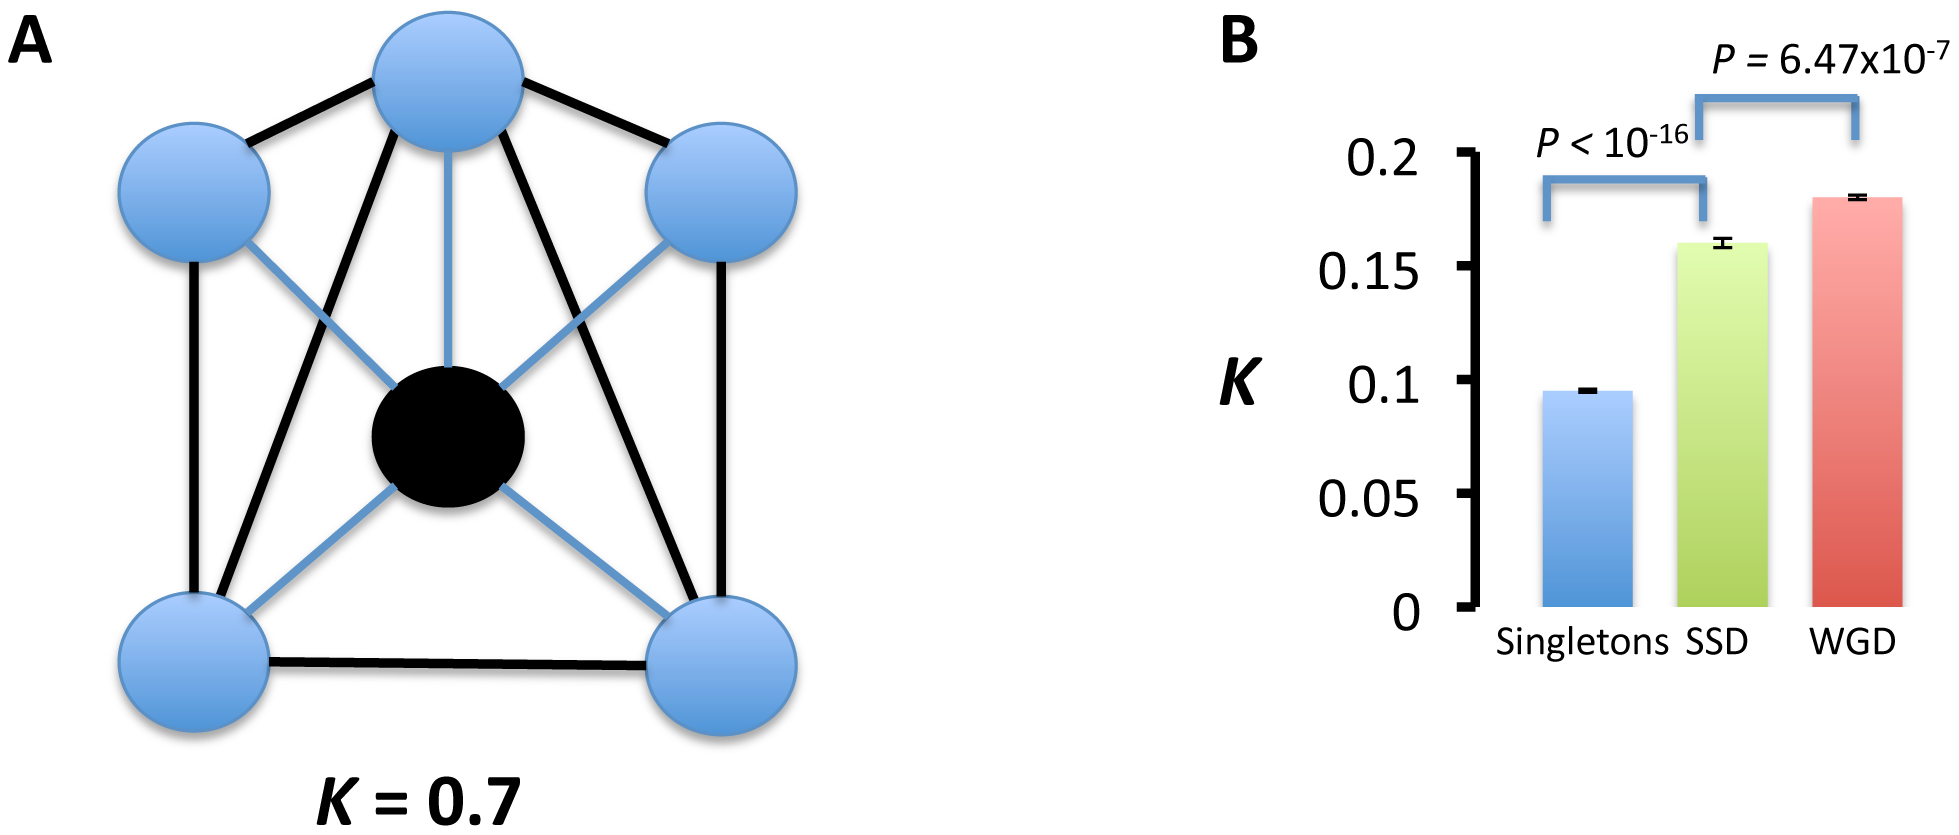 Interaction partners of duplicated genes are more functionally related than those of singletons.